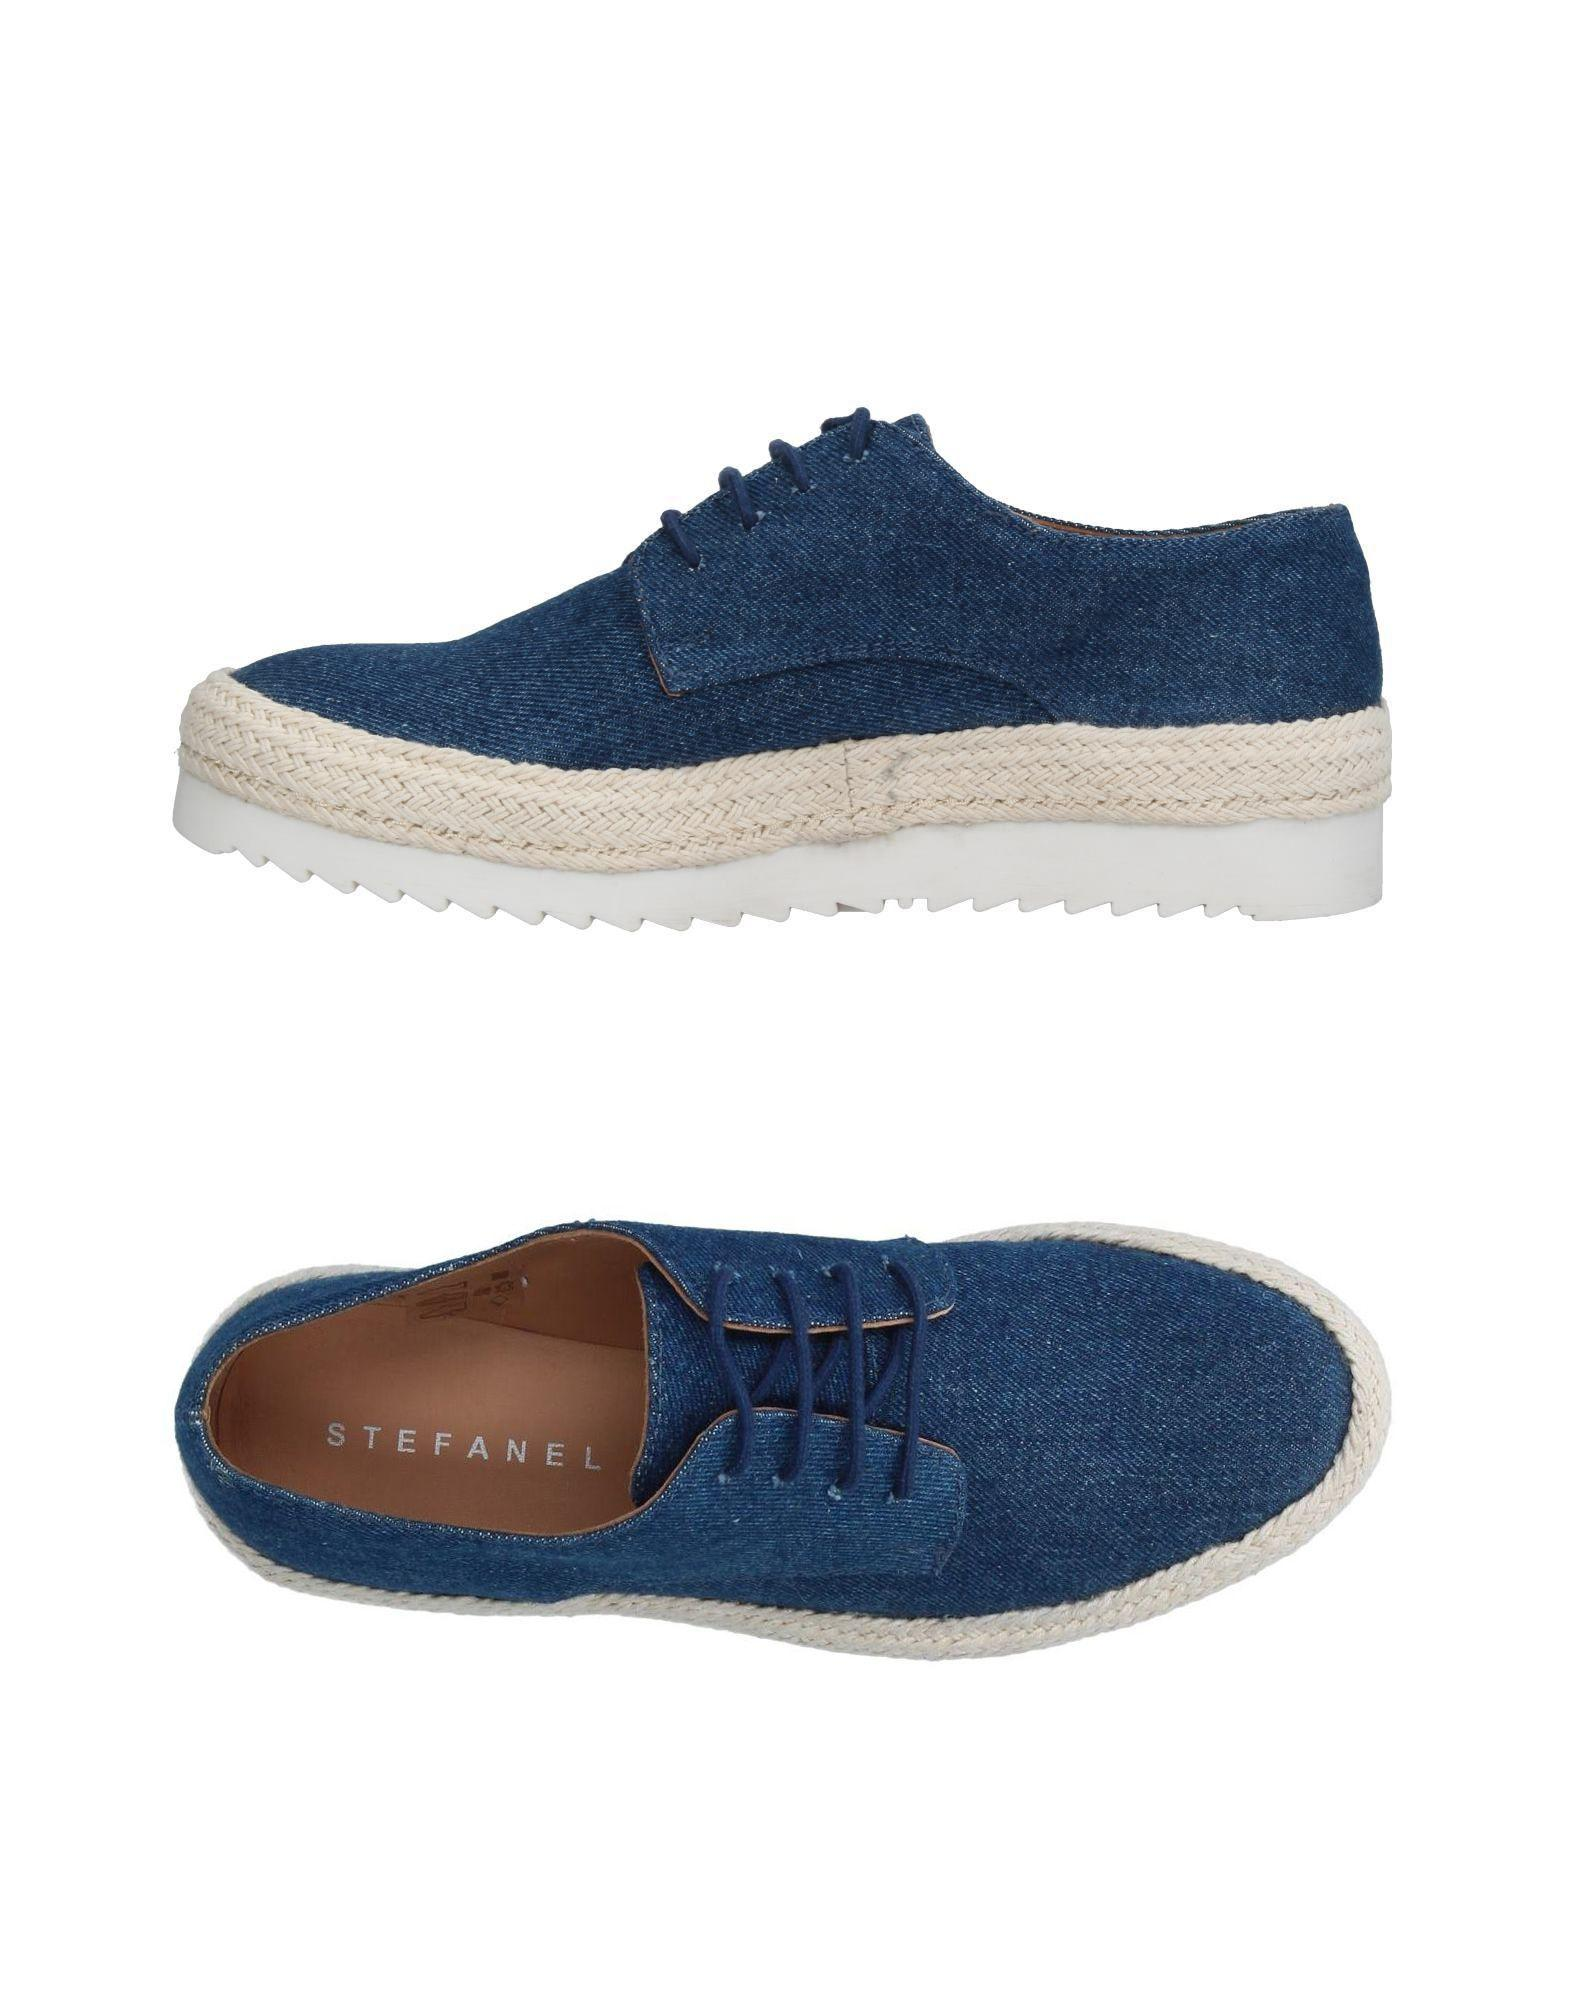 STEFANEL Espadrilles big discount cheap price under $60 cheap price free shipping brand new unisex low price fee shipping for sale buy cheap find great 8TkYaV